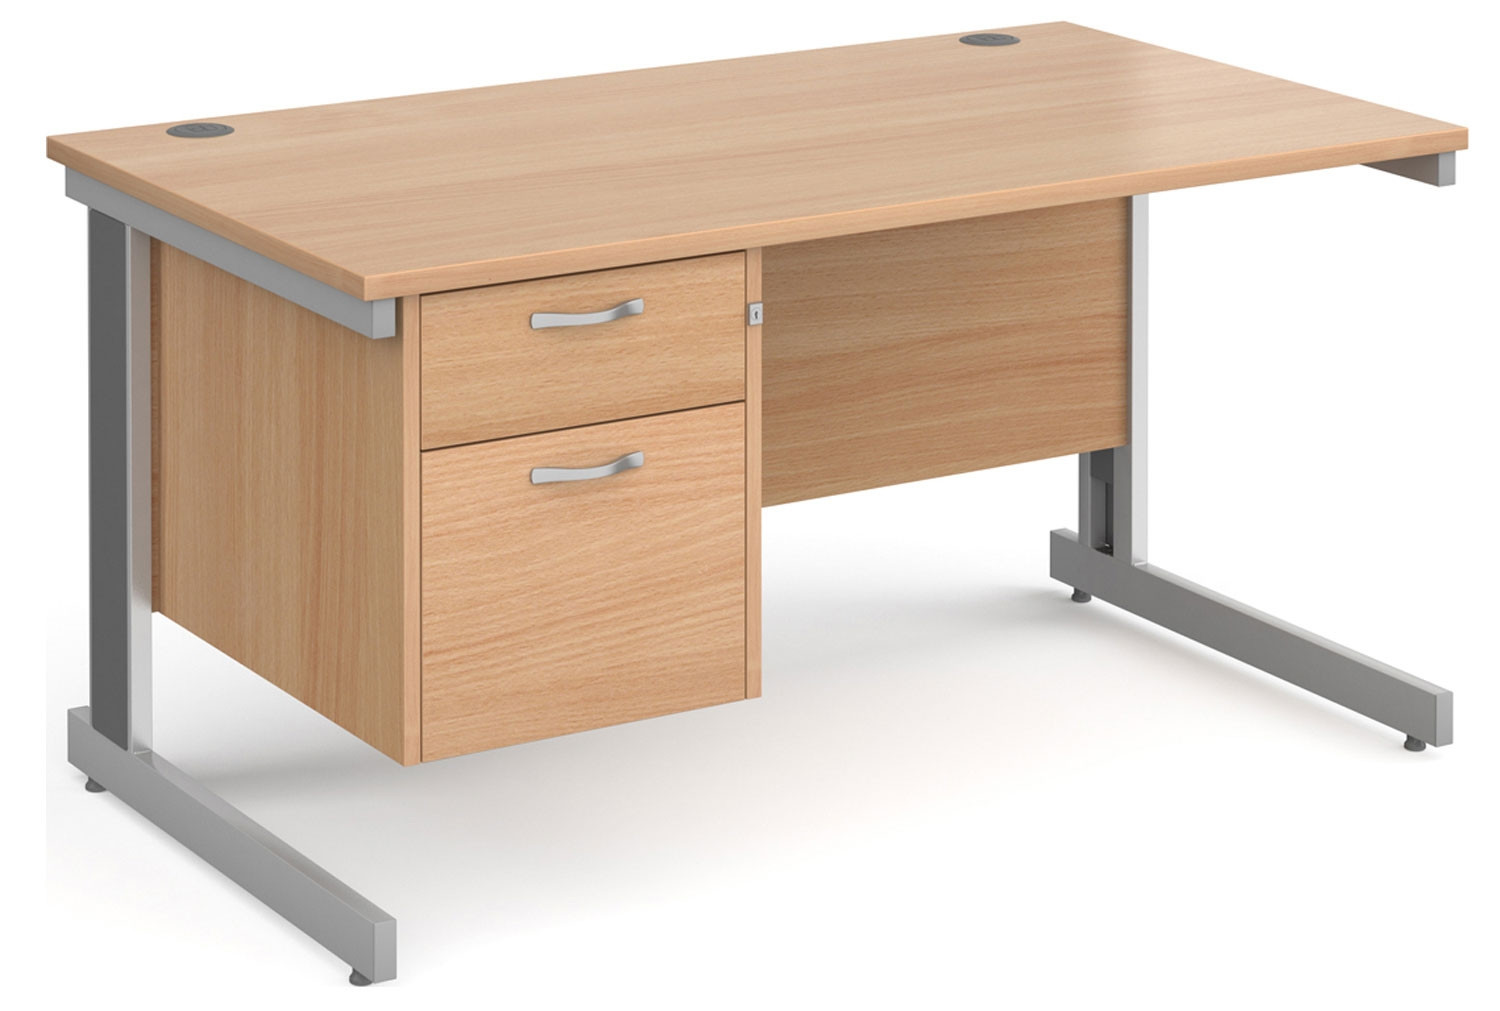 Tully Deluxe Rectangular Desk 2 Drawers